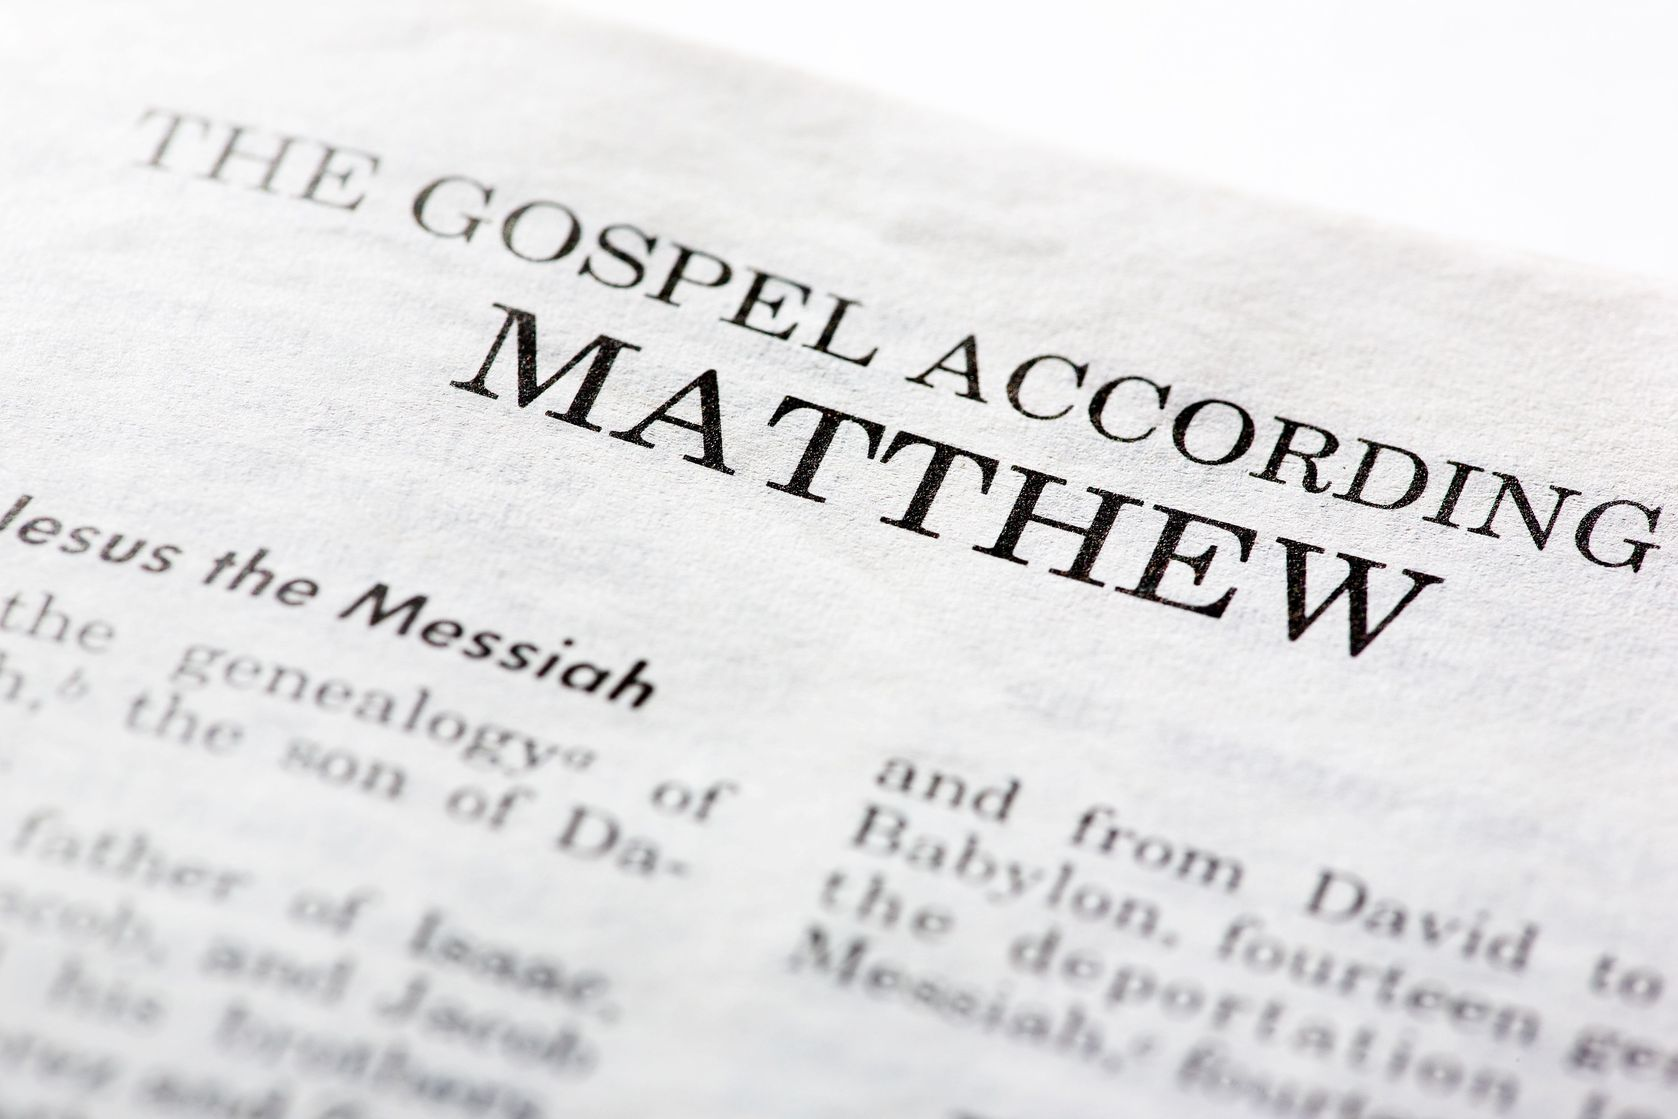 the gospel of matthew The gospel of matthew: commentary, notes and study questions (the ignatius catholic study bible) [scott hahn, curtis mitch, dennis walters] on amazoncom free shipping on qualifying.